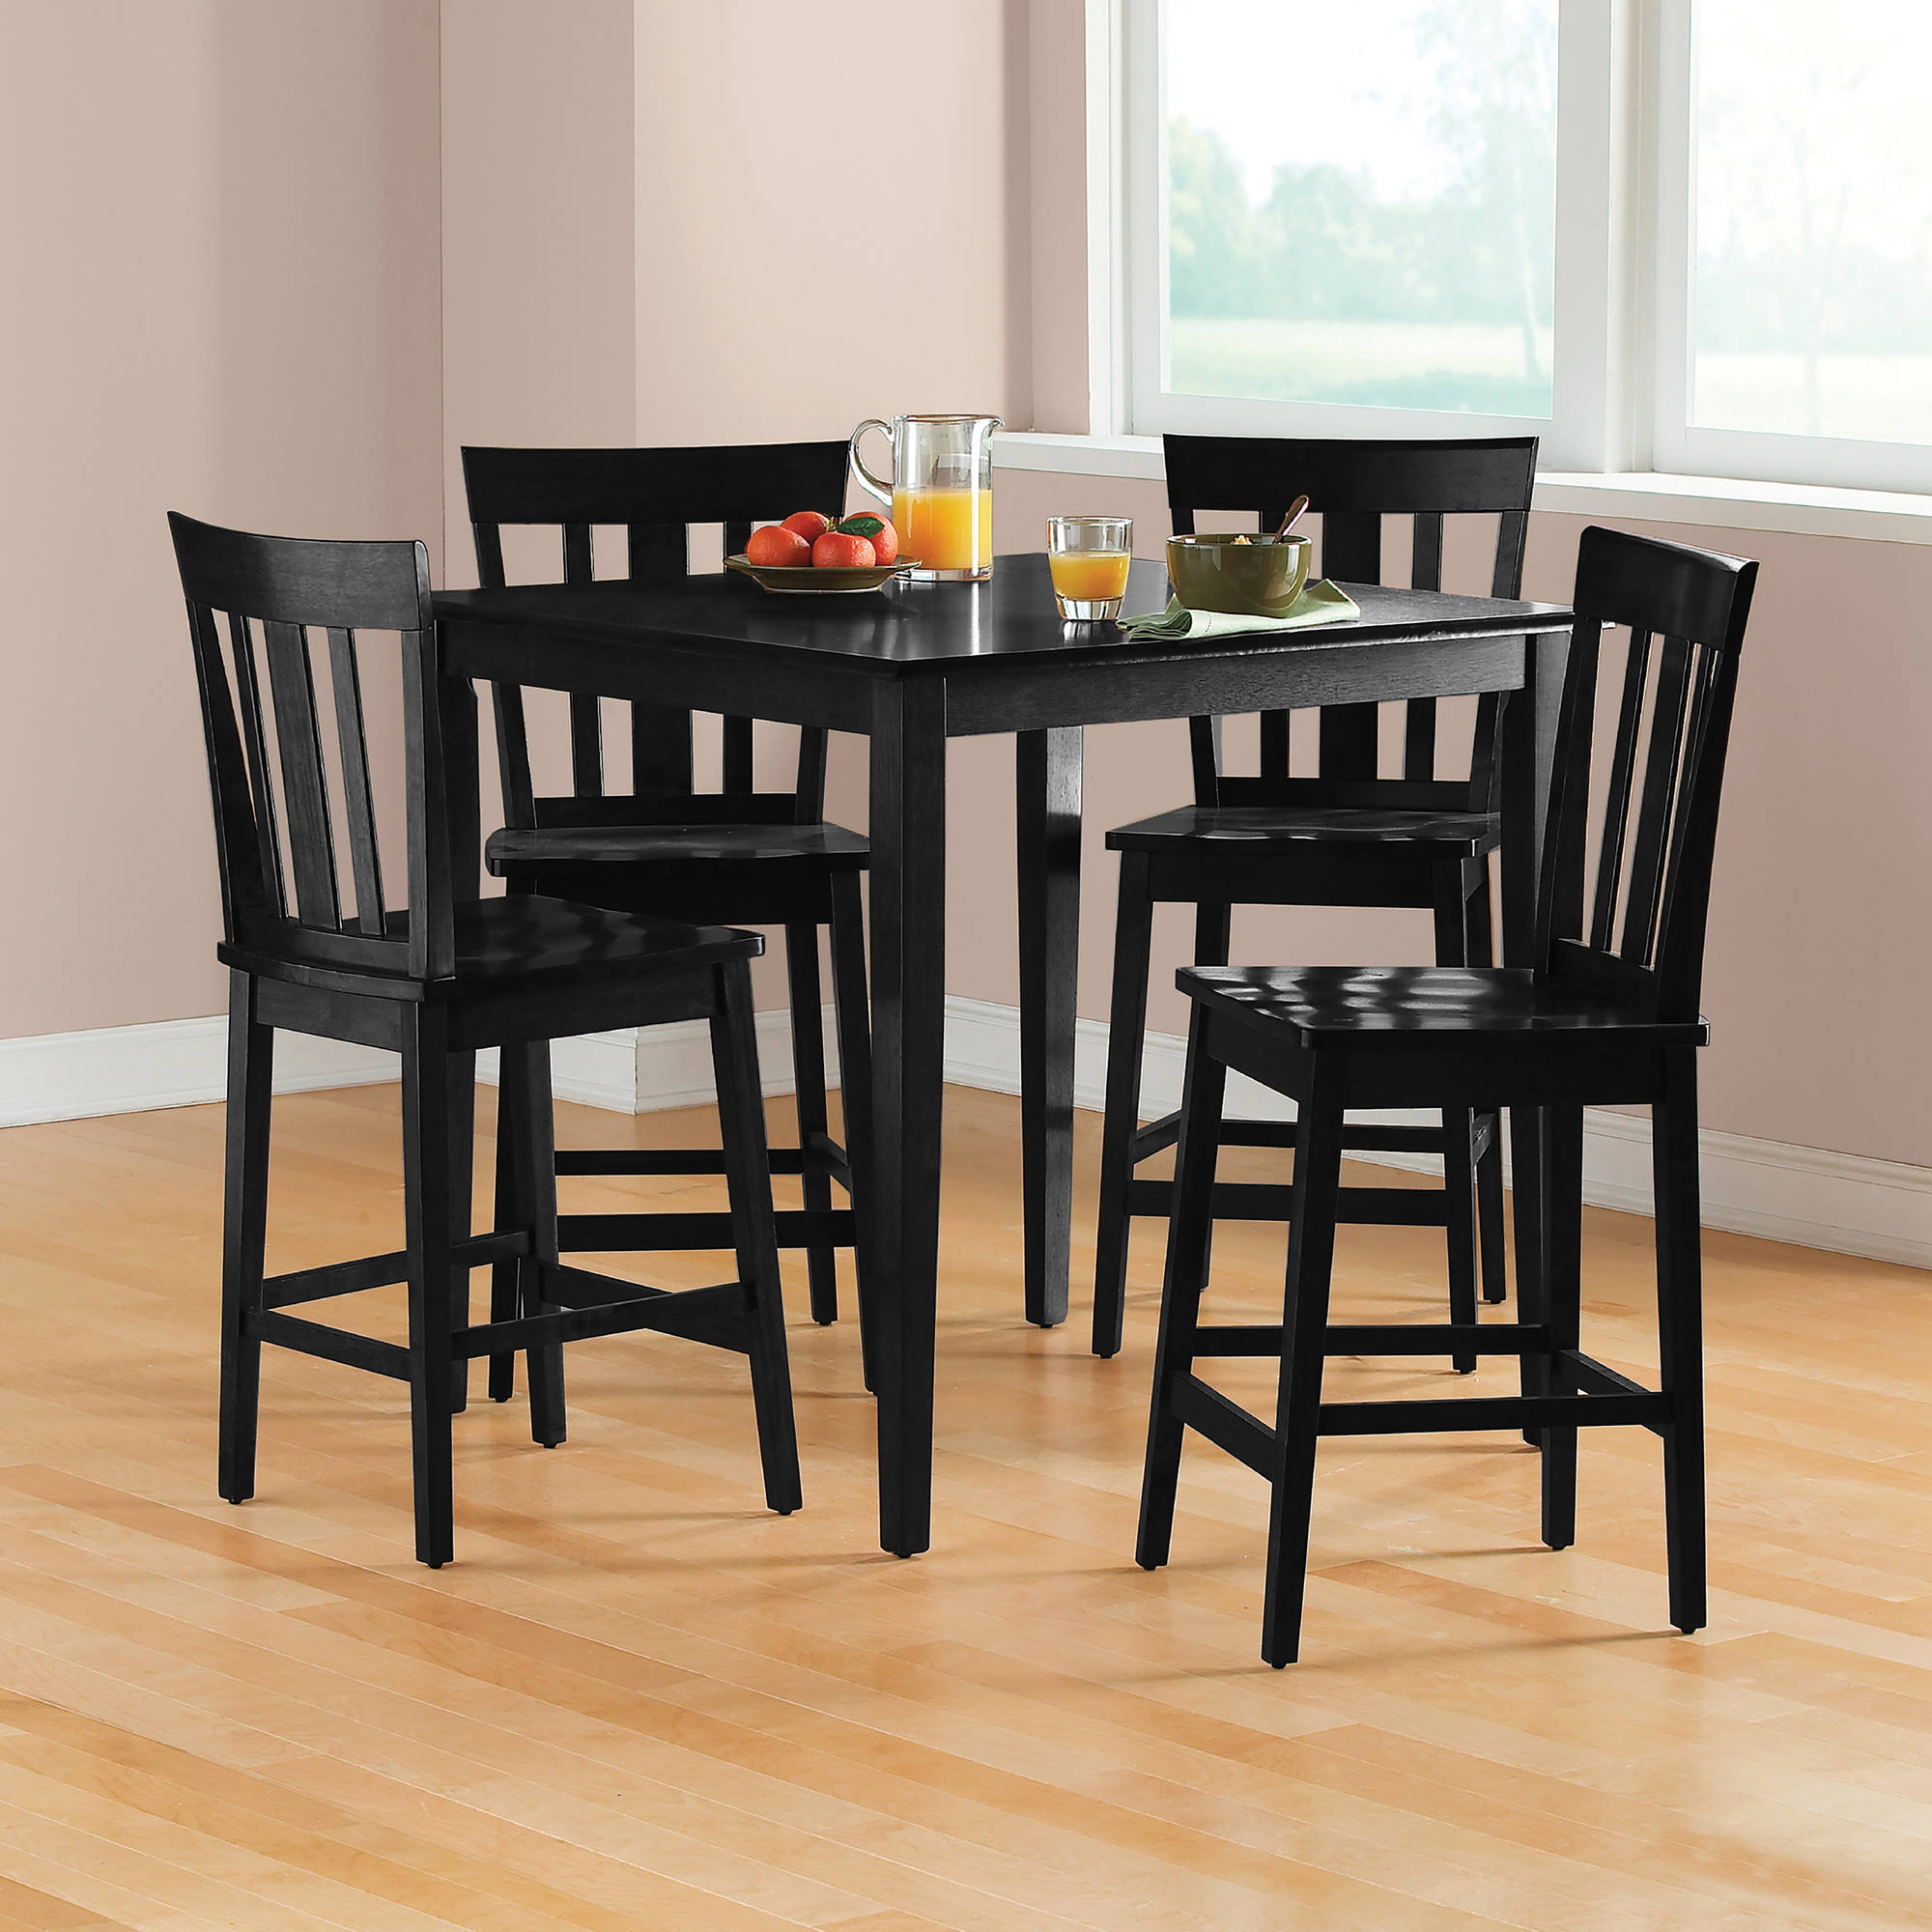 Well Liked Mainstays 5 Piece Mission Counter Height Dining Set – Walmart Within Goodman 5 Piece Solid Wood Dining Sets (Set Of 5) (View 6 of 25)